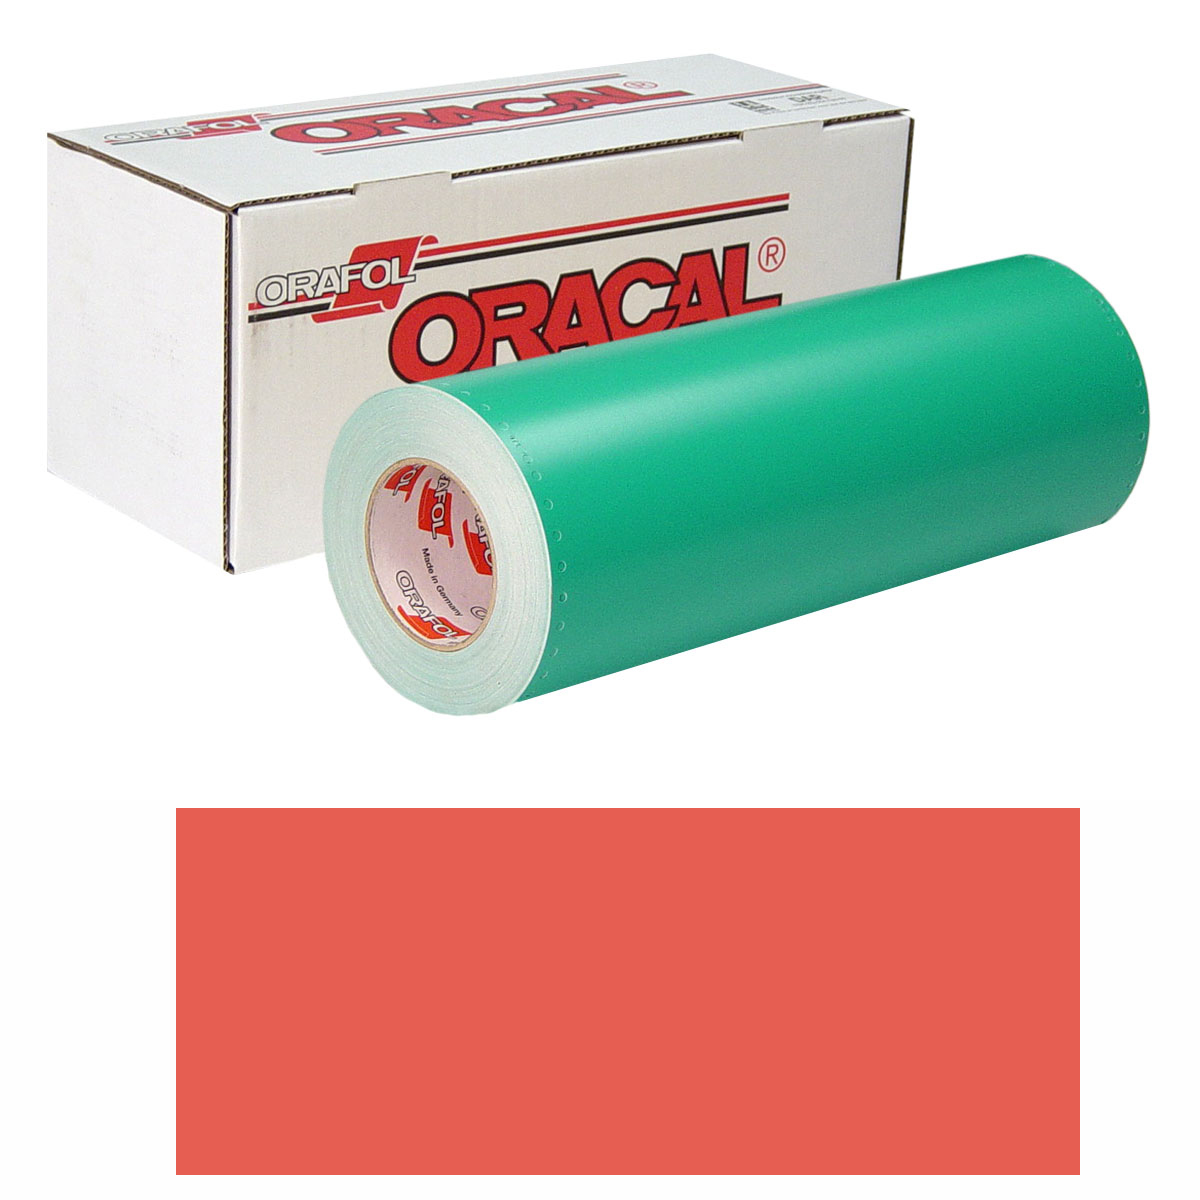 ORACAL 8500 Unp 48in X 50yd 016 Crimson